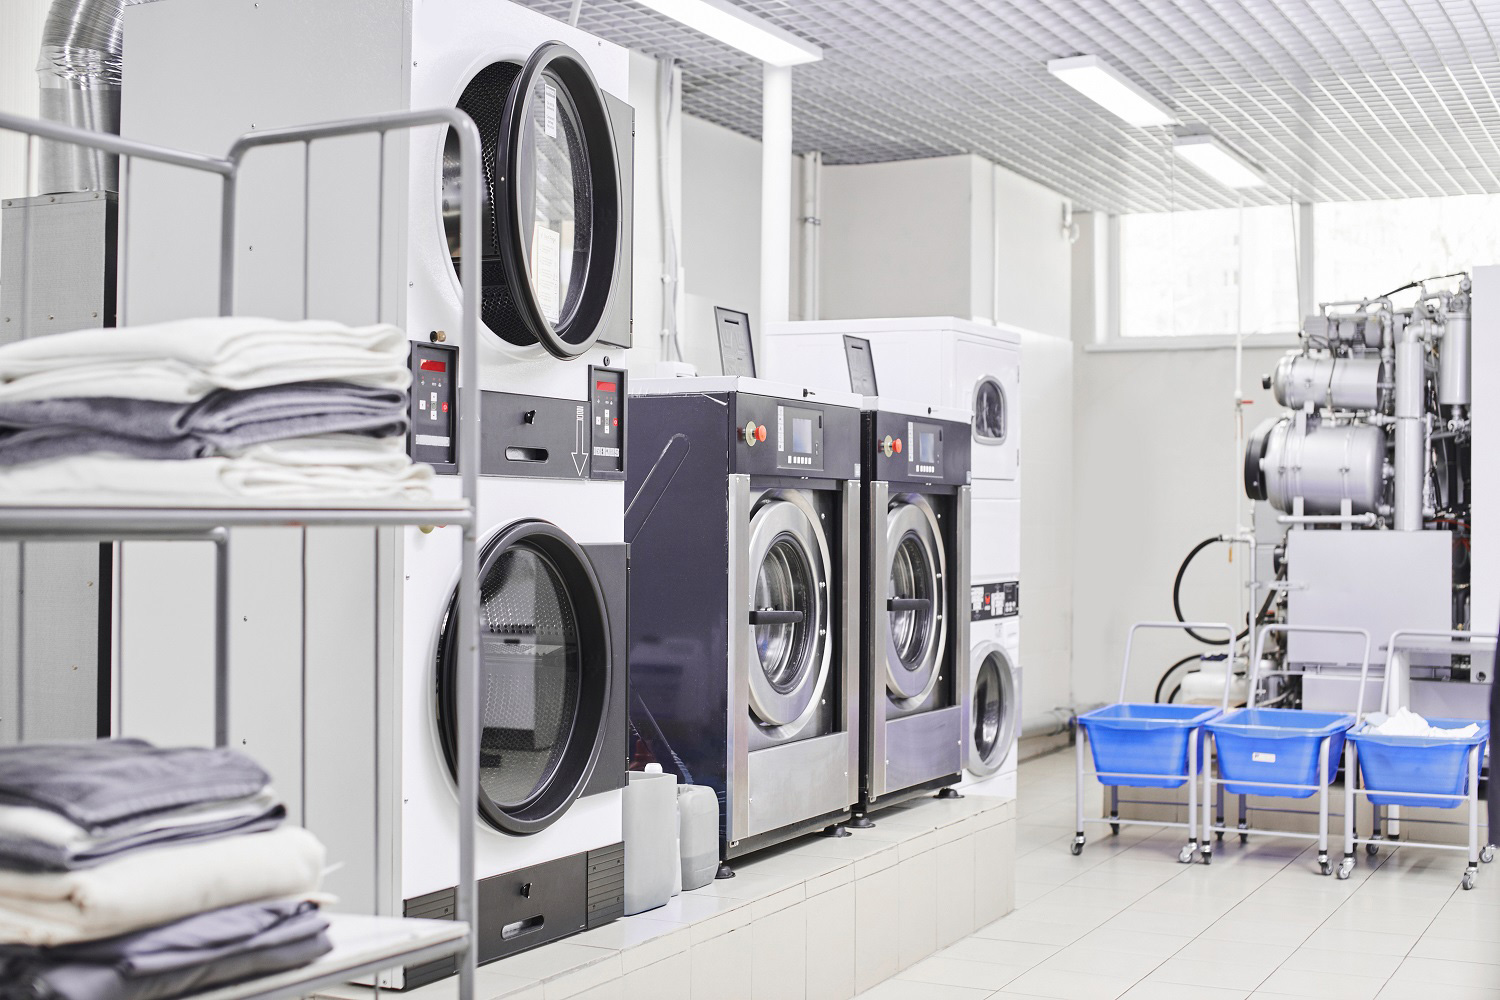 Commercial laundry detergents and programmes for industrial laundries